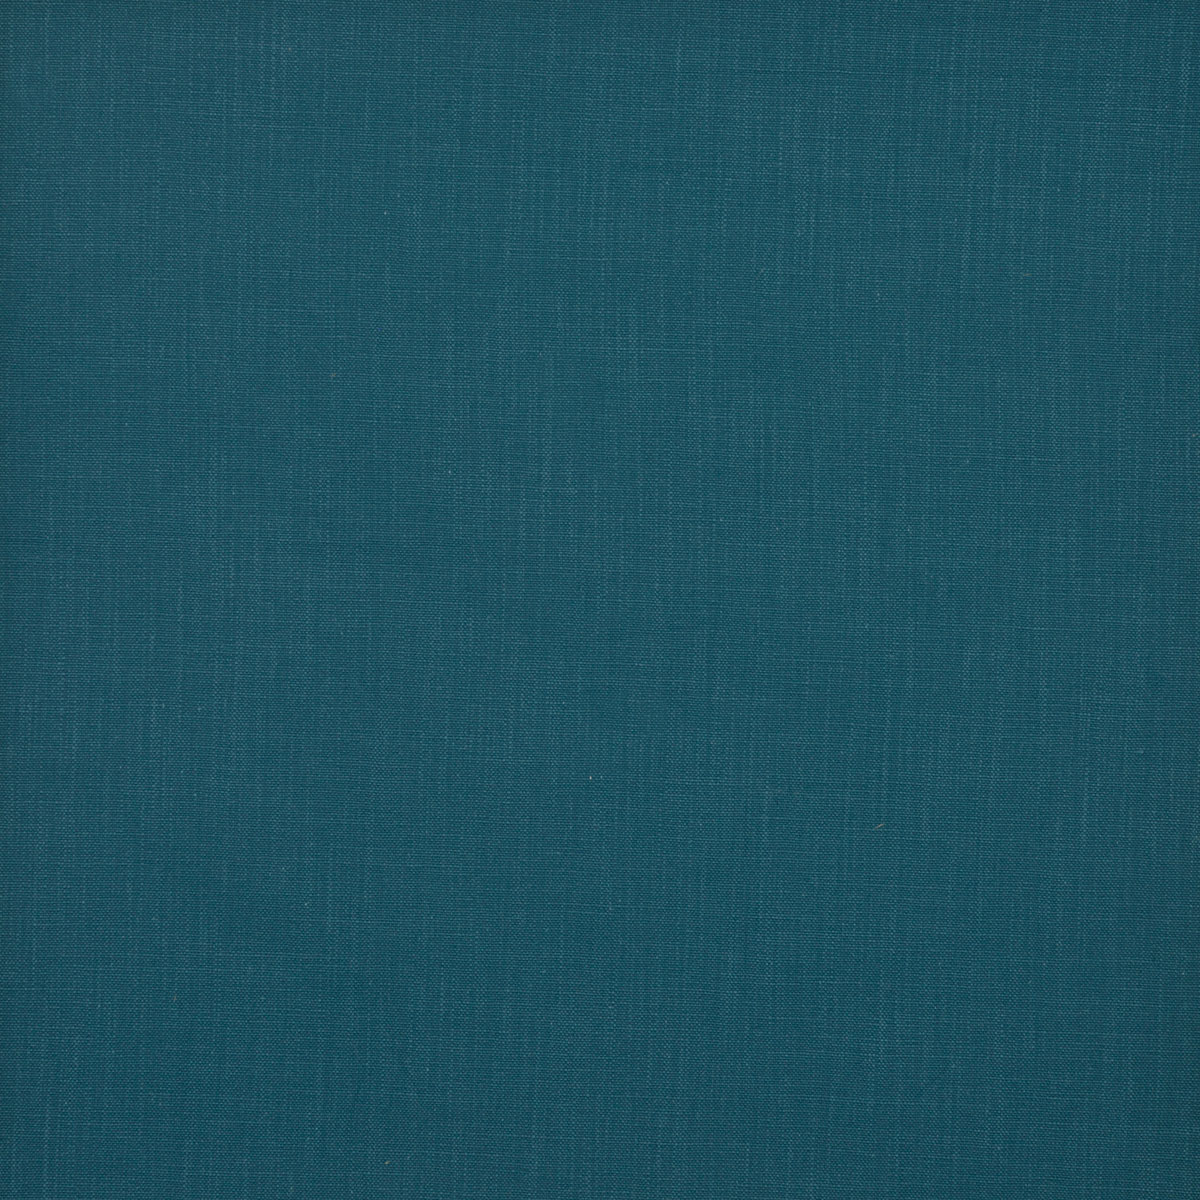 Savanna curtain fabric in petrol terrys fabrics uk - Benefits of light colored upholstery and curtains ...